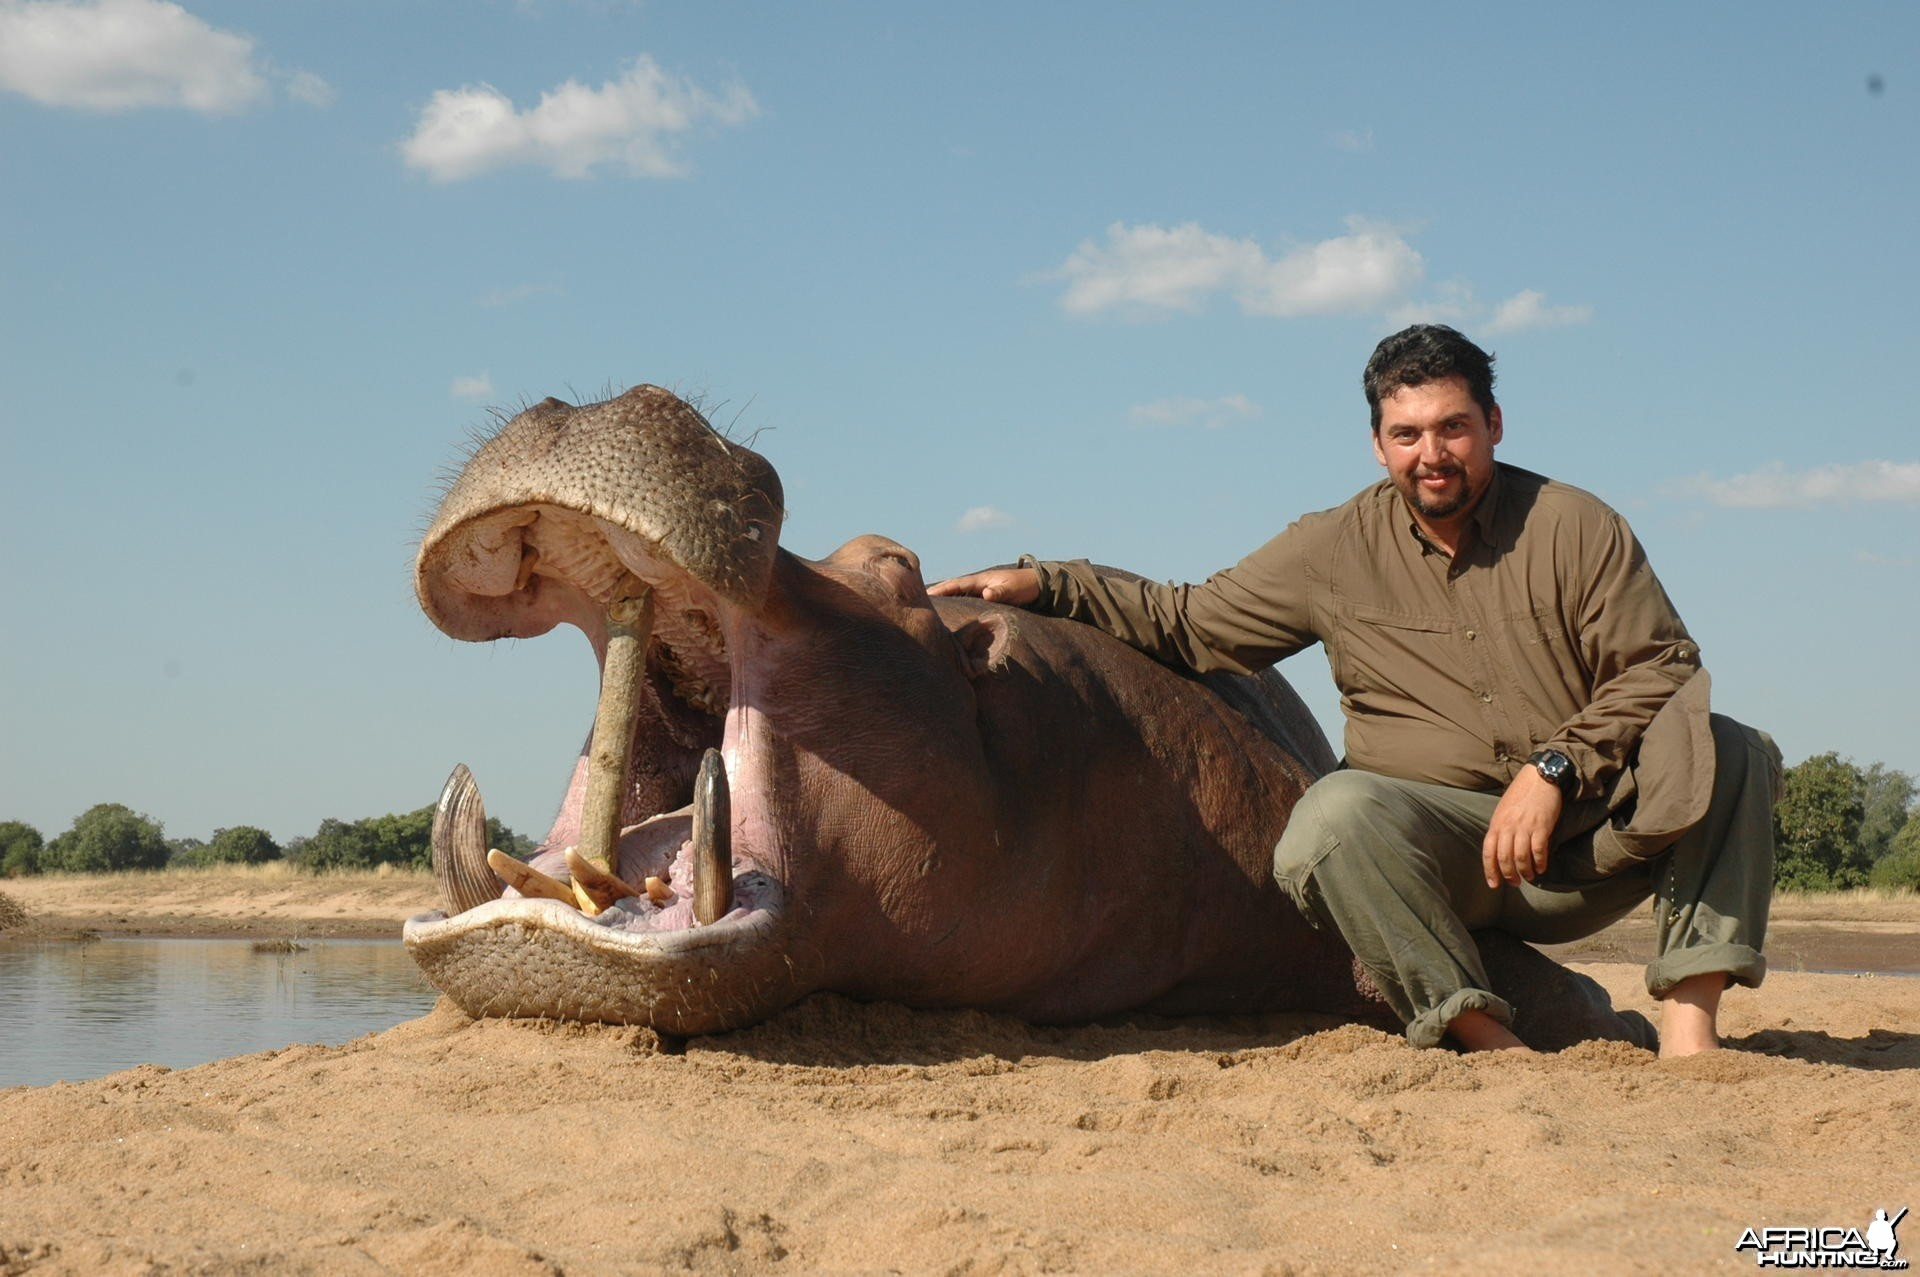 Hippo hunted in Zimbabwe